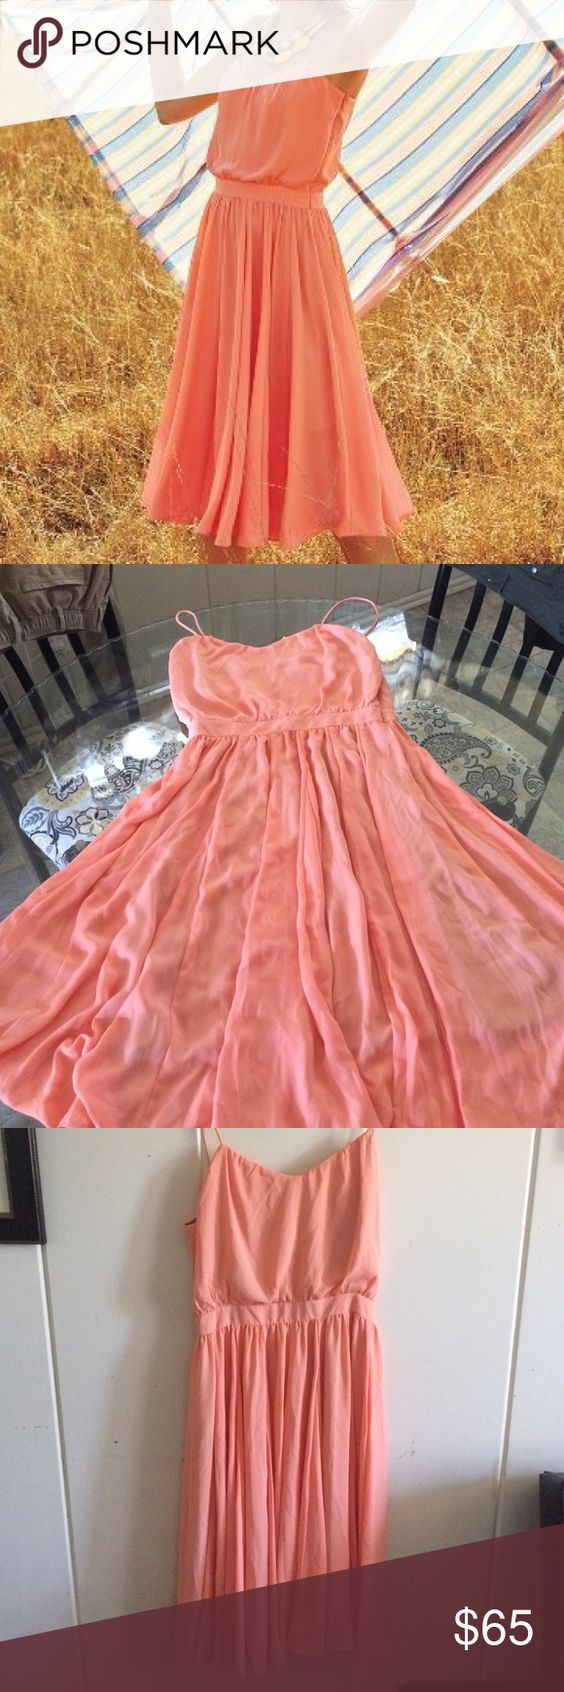 Paper Crown Peach Tree Dress Anthropologie Gorgeous dress😍😍😍 Fashion line by Lauren Conrad. Very elegant. Has a tiny snag check the last pic, almost unnoticeable. Measurement from underarm laying flat is 34' Bust is 19'. Please make reasonable offers with the button offer only. Anthropologie Dresses